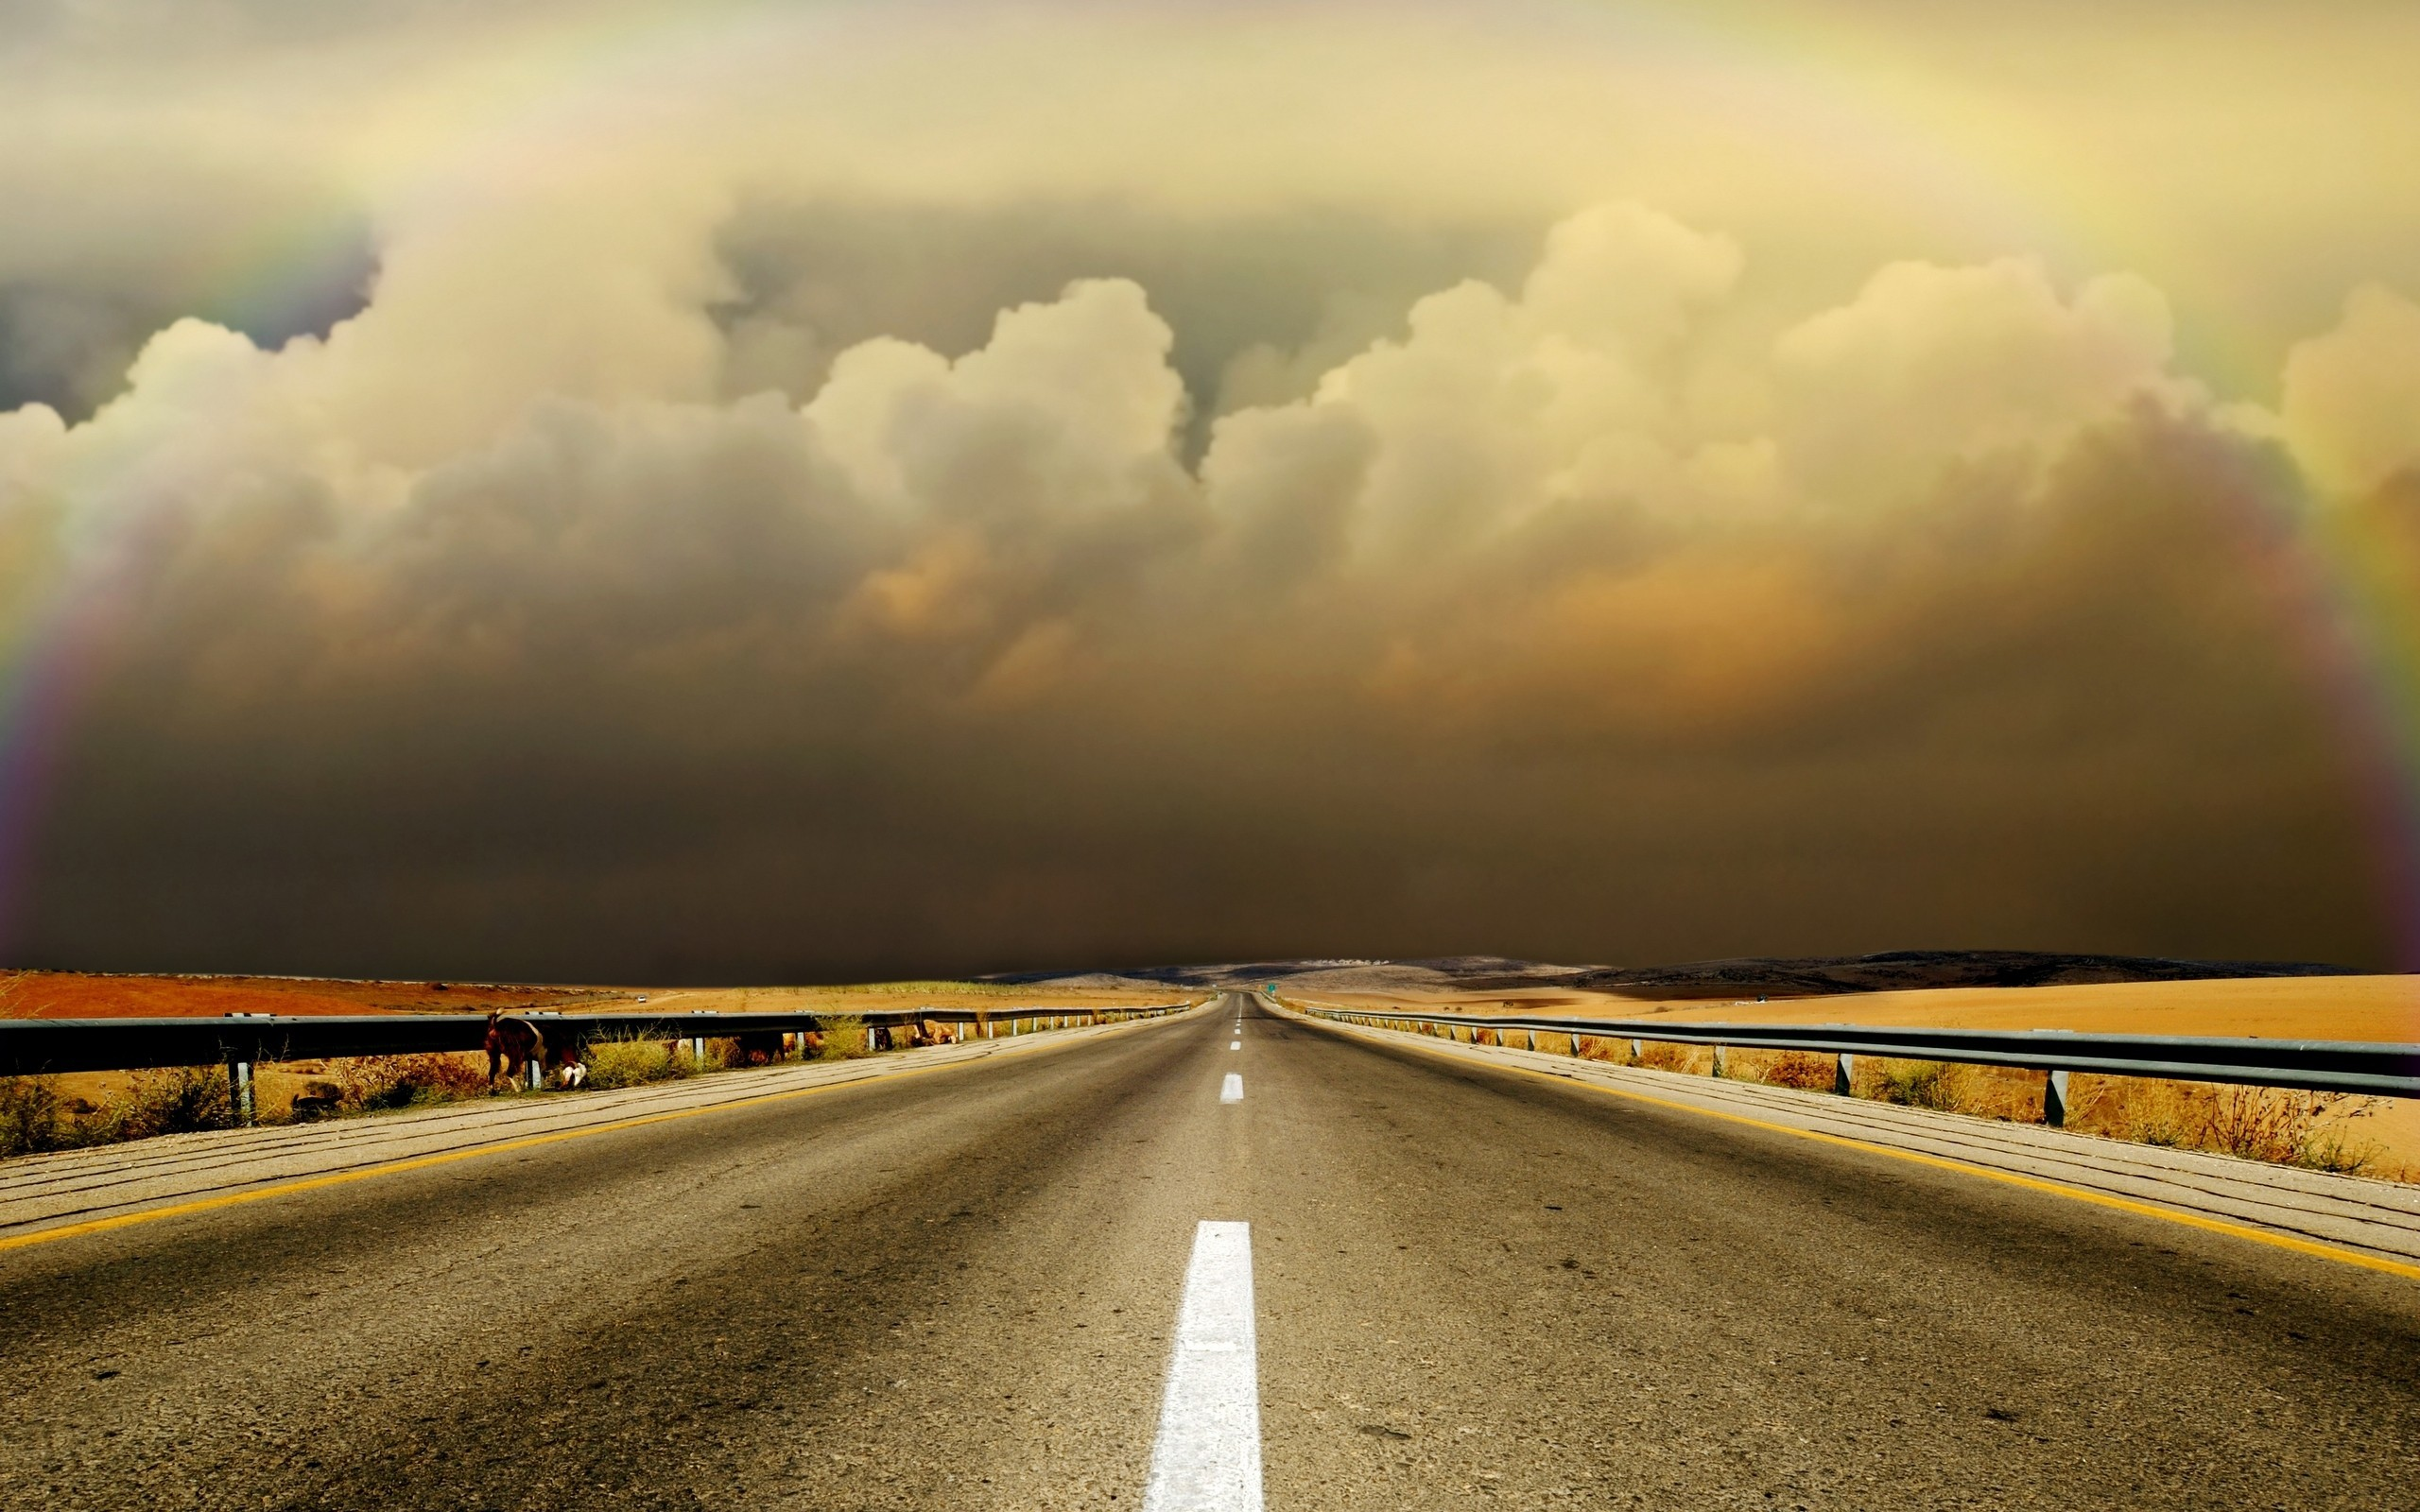 clouds Landscapes Highways roads HD Wallpaper